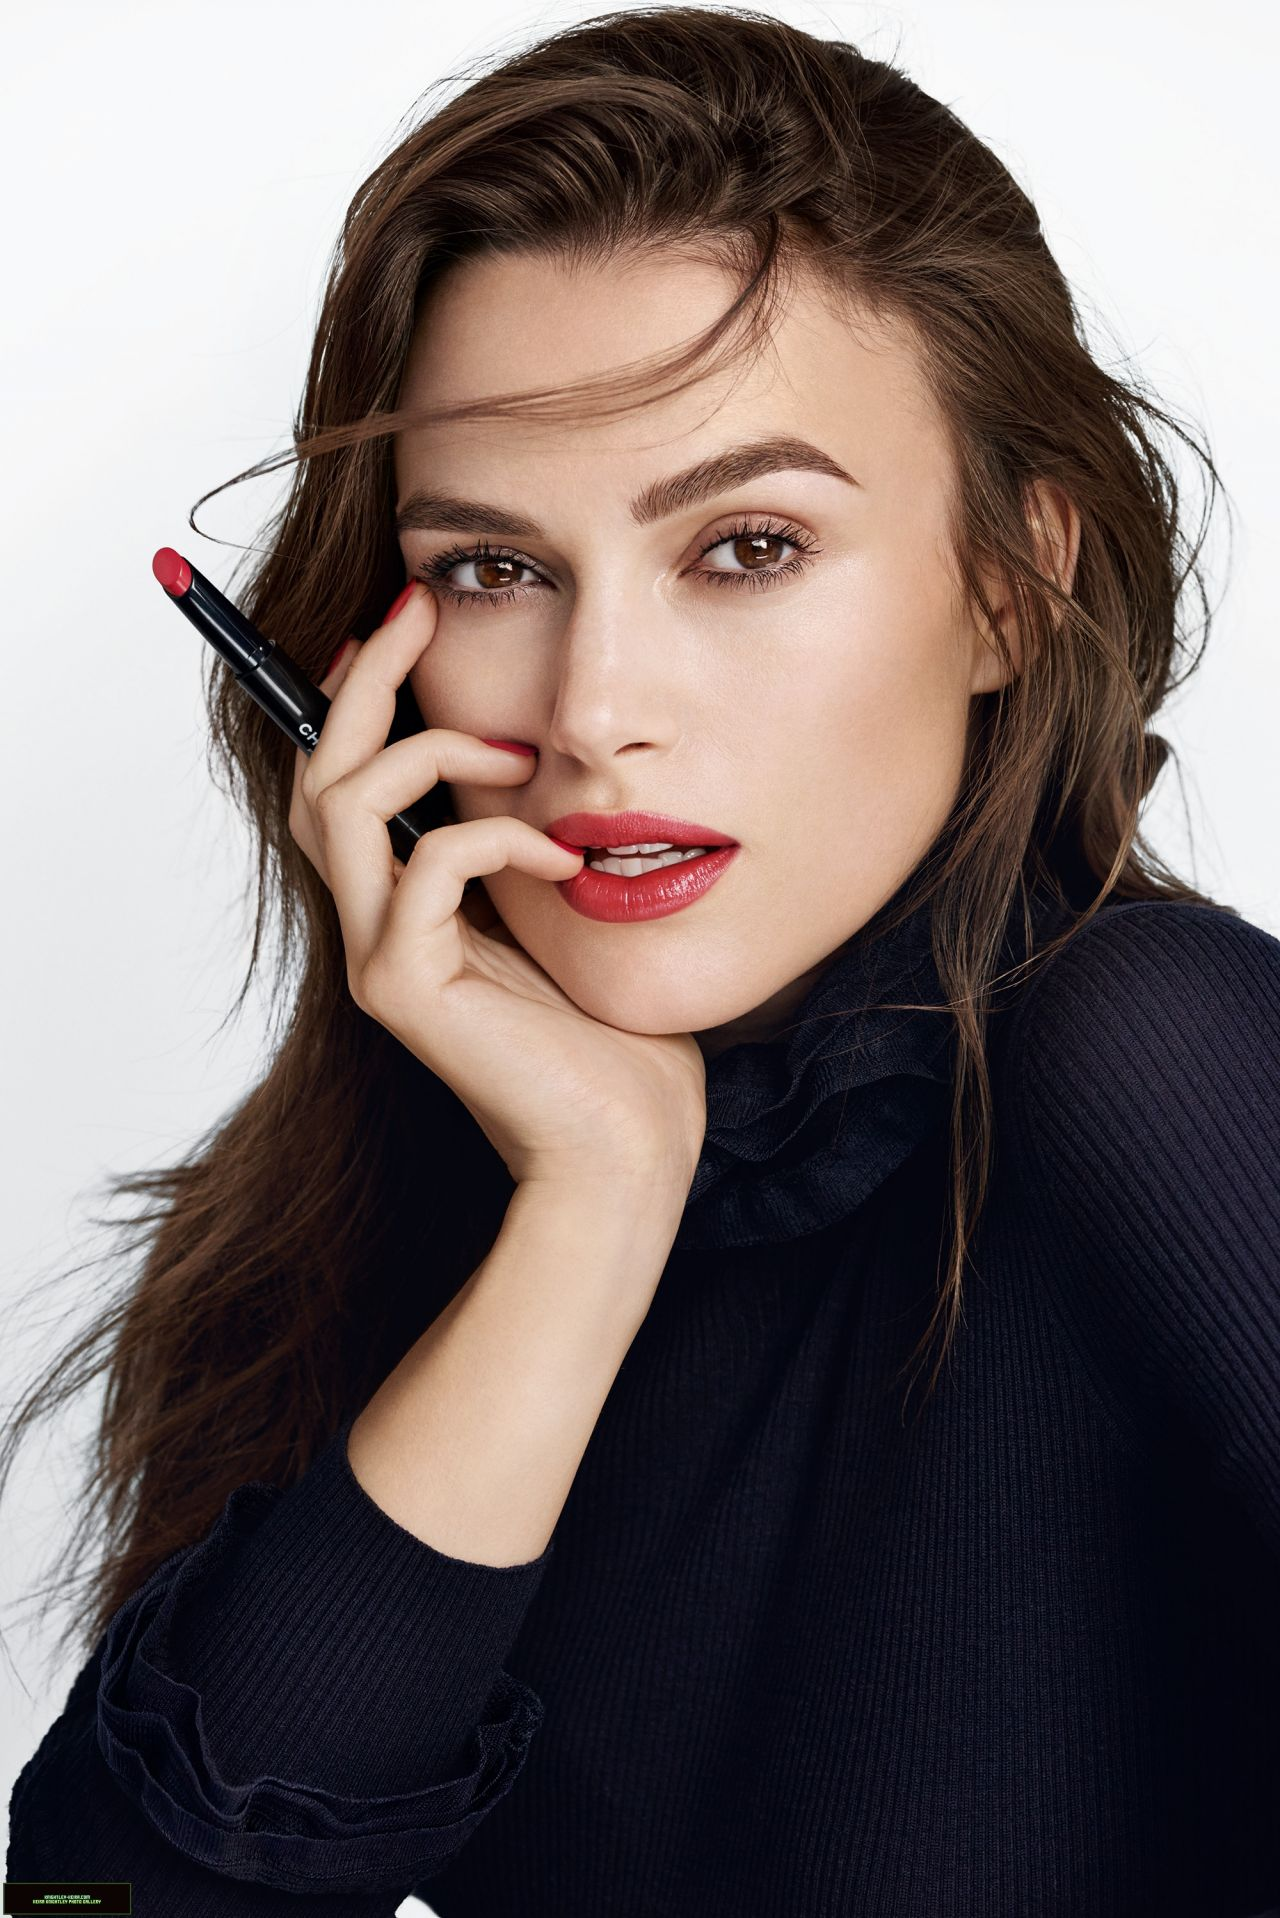 Keira Knightley – Chanel Rouge Coco Lipstick Photoshoot 2016